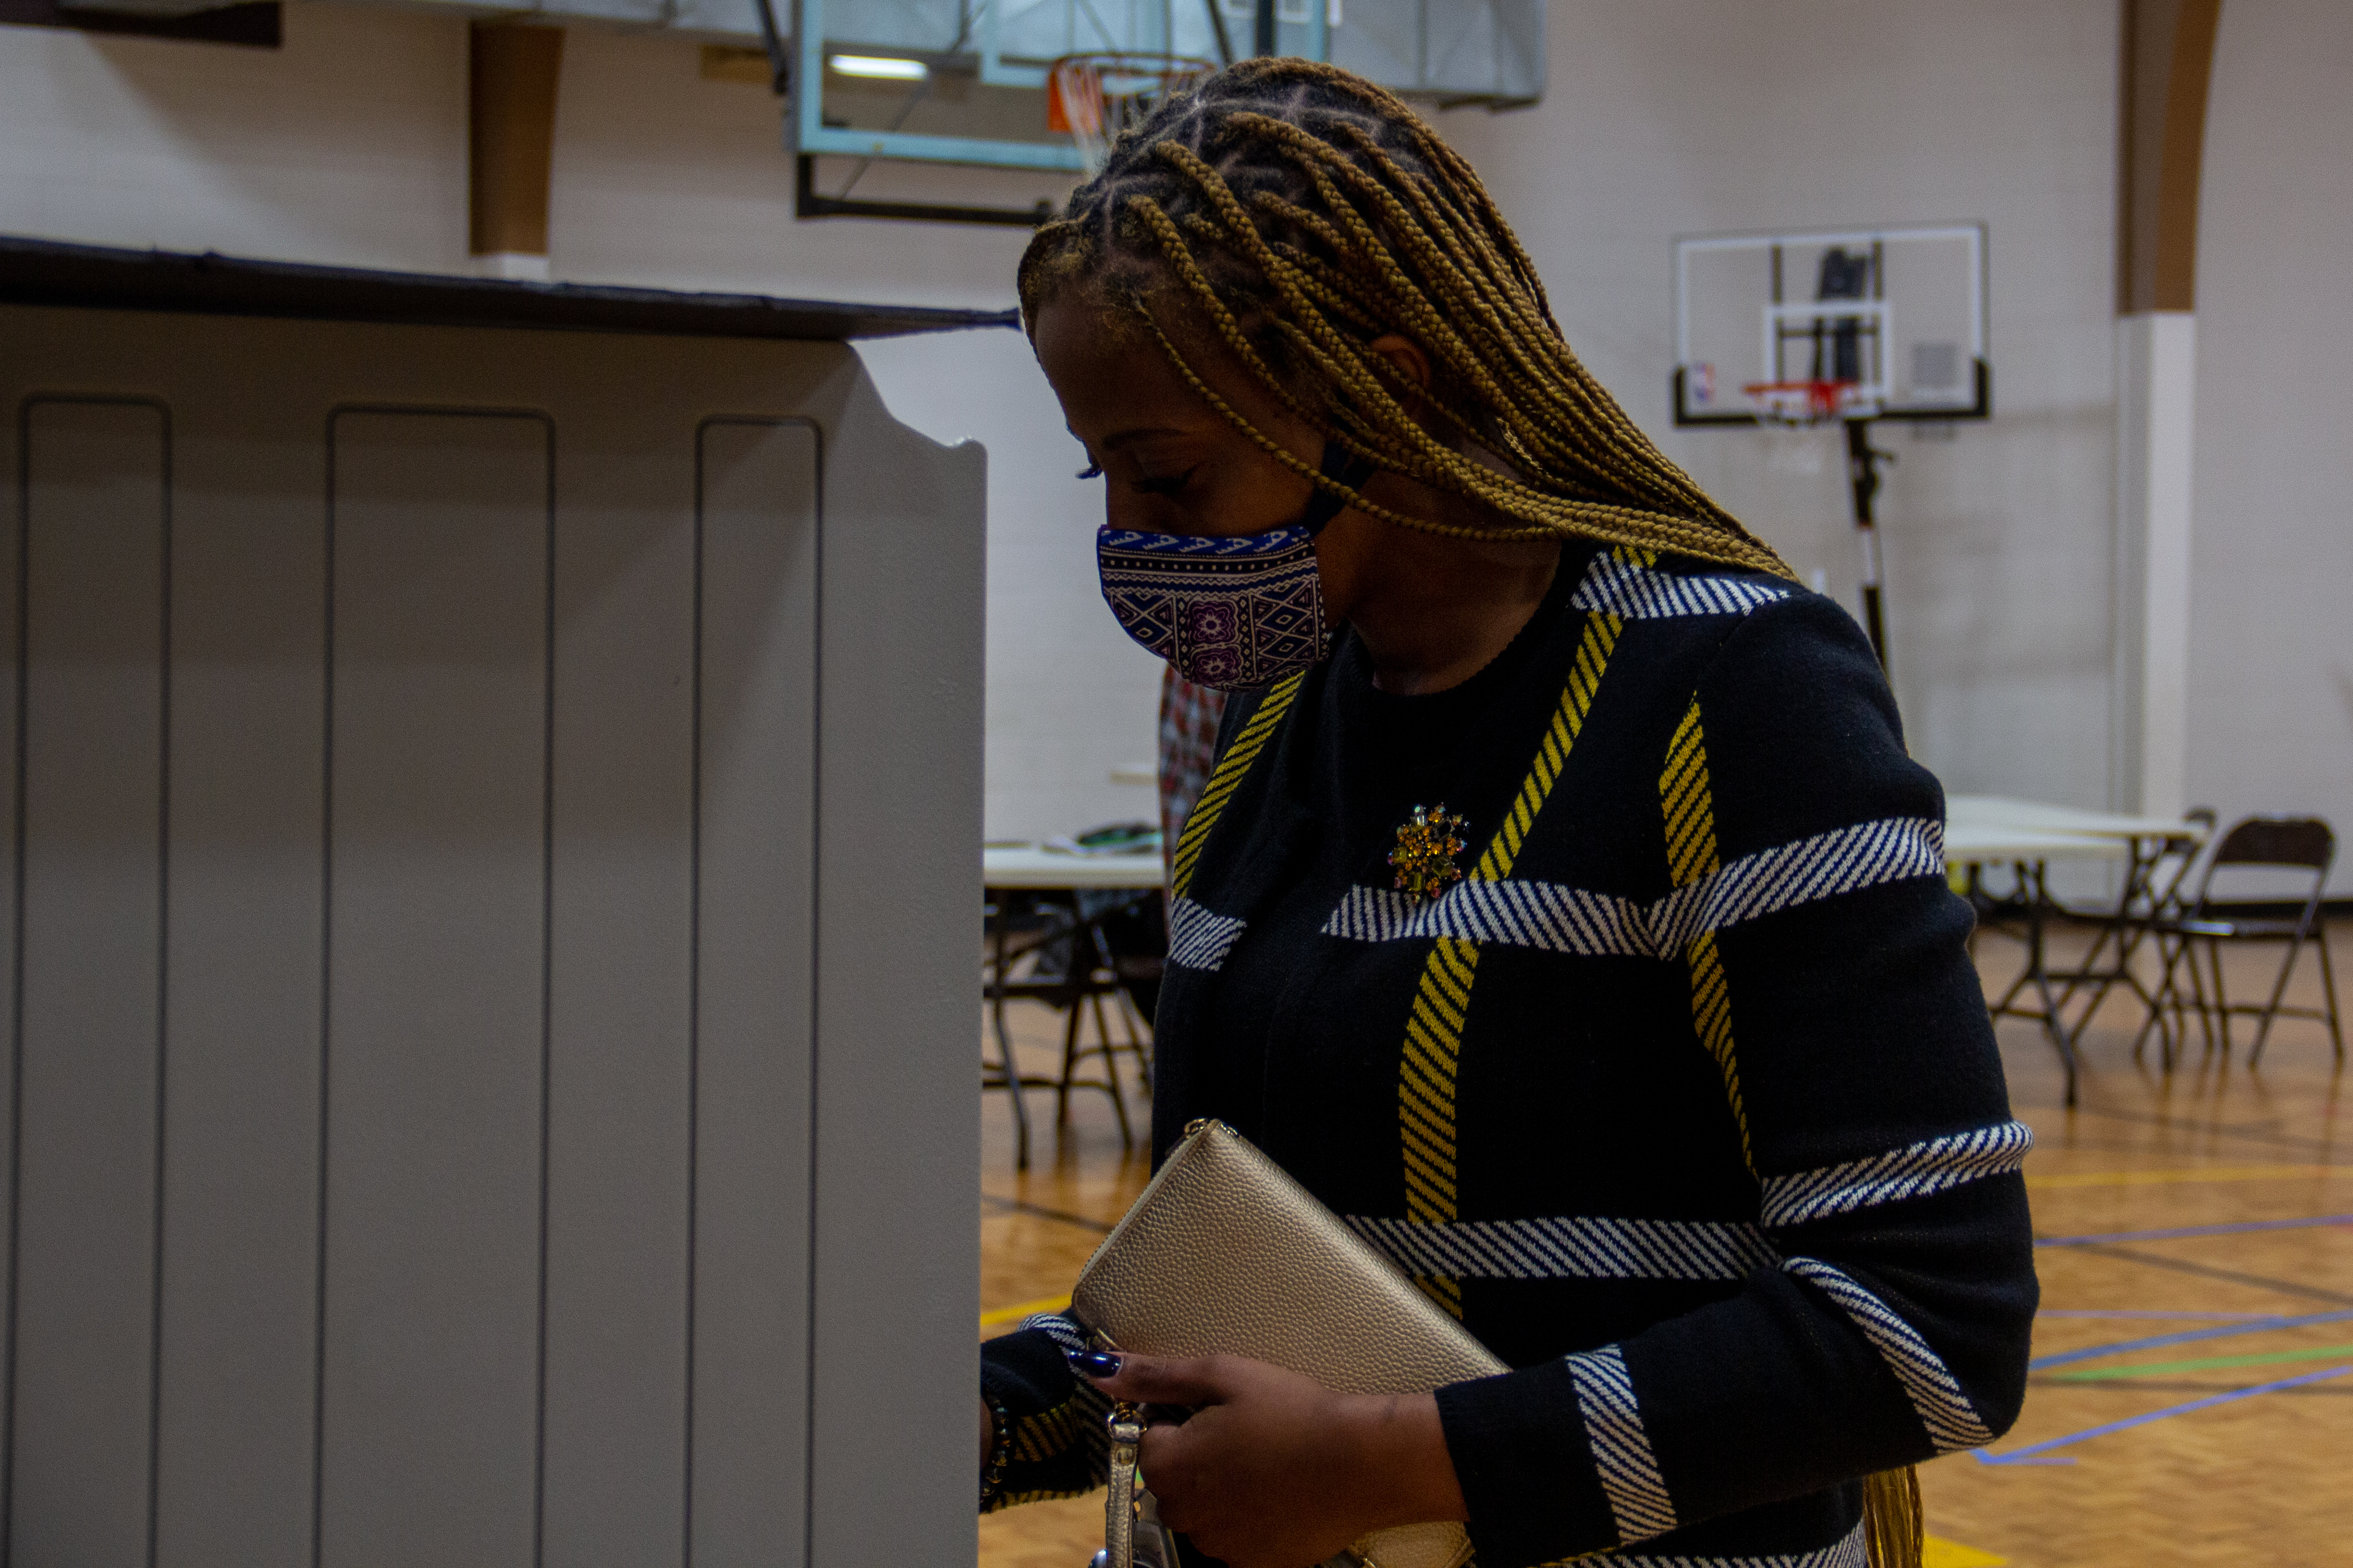 Experienced voters expressed the importance of all ballot casters during the 2020 election. NICHOLE BARNES | THE ALL STATE